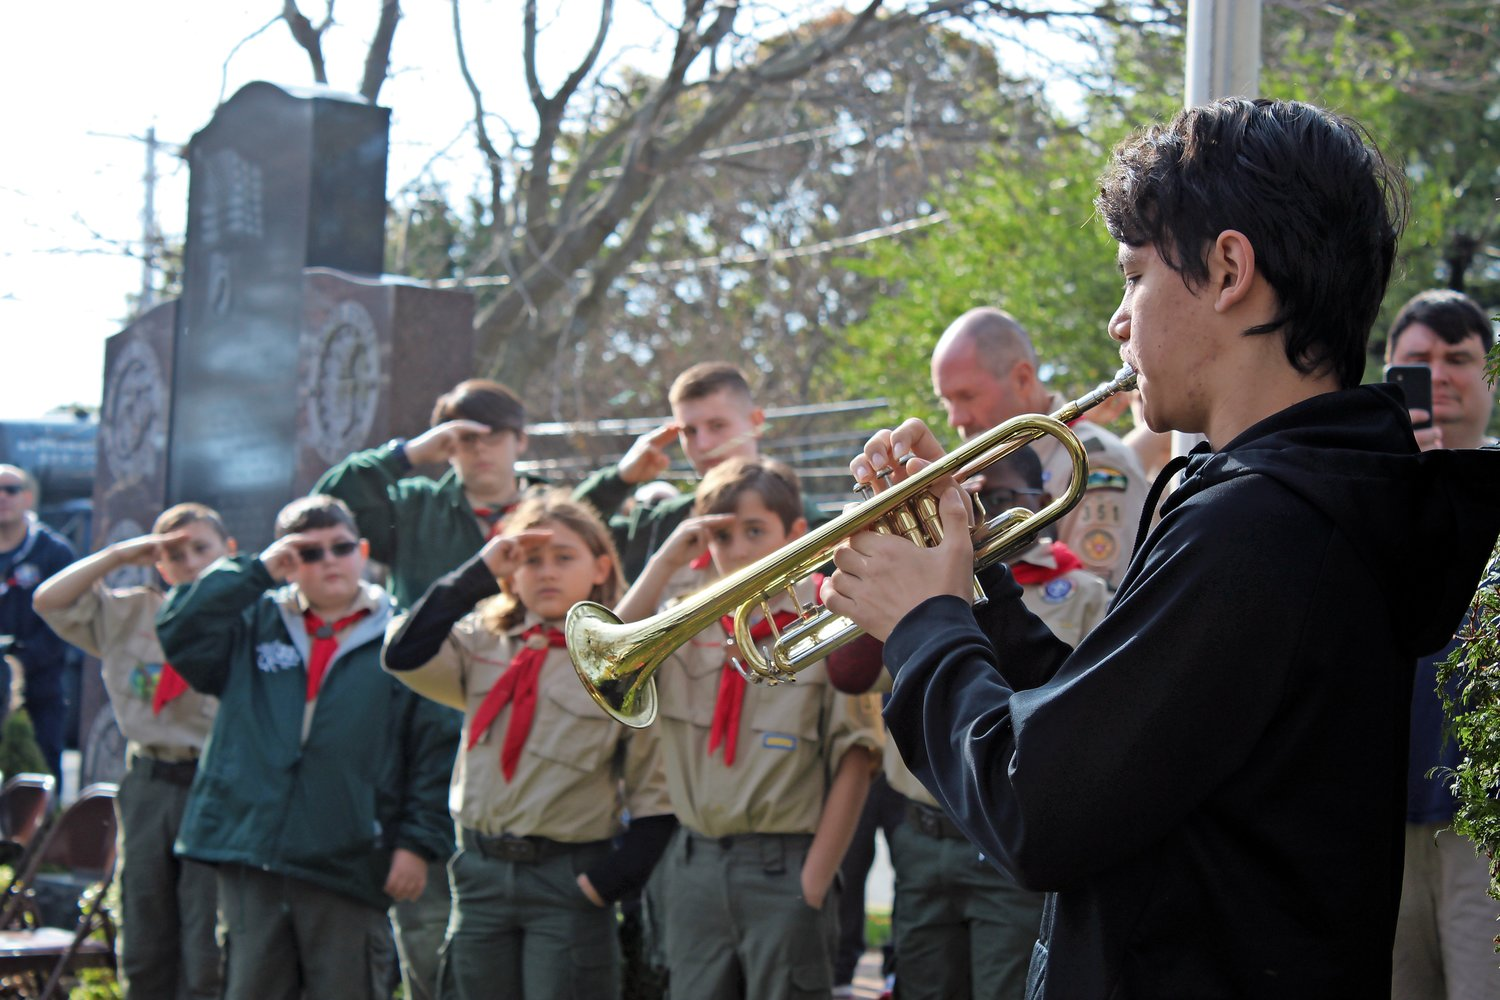 At American Legion Post 1282's annual Veterans Day ceremony on Monday at Veterans Memorial Park in Merrick, Calhoun High School freshman Hayden Okonowitz played taps as members of Boy Scout Troop 351 saluted.